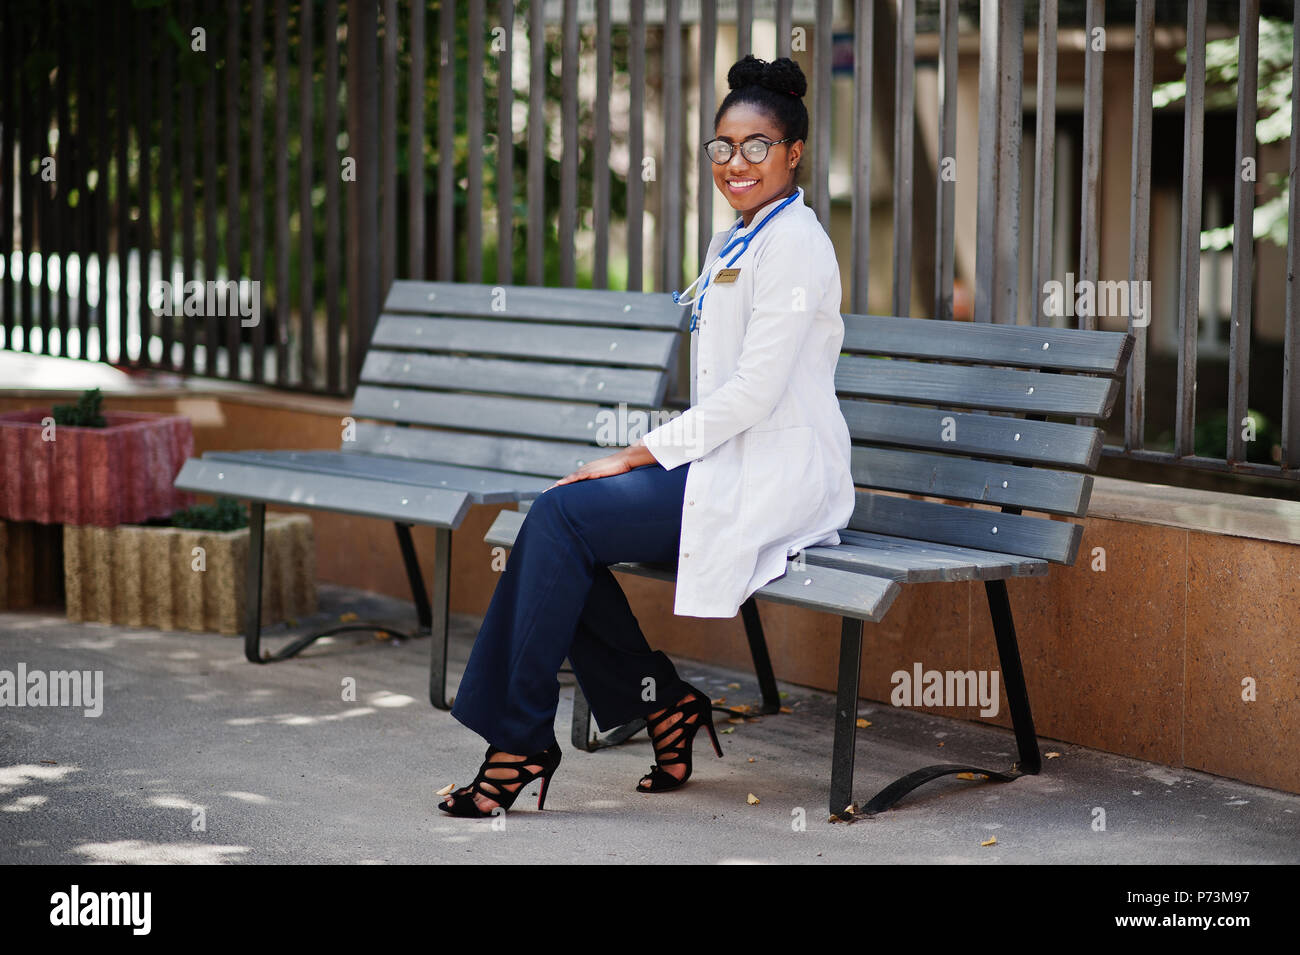 African american doctor female at lab coat with stethoscope posed outdoor sitting on bench. - Stock Image